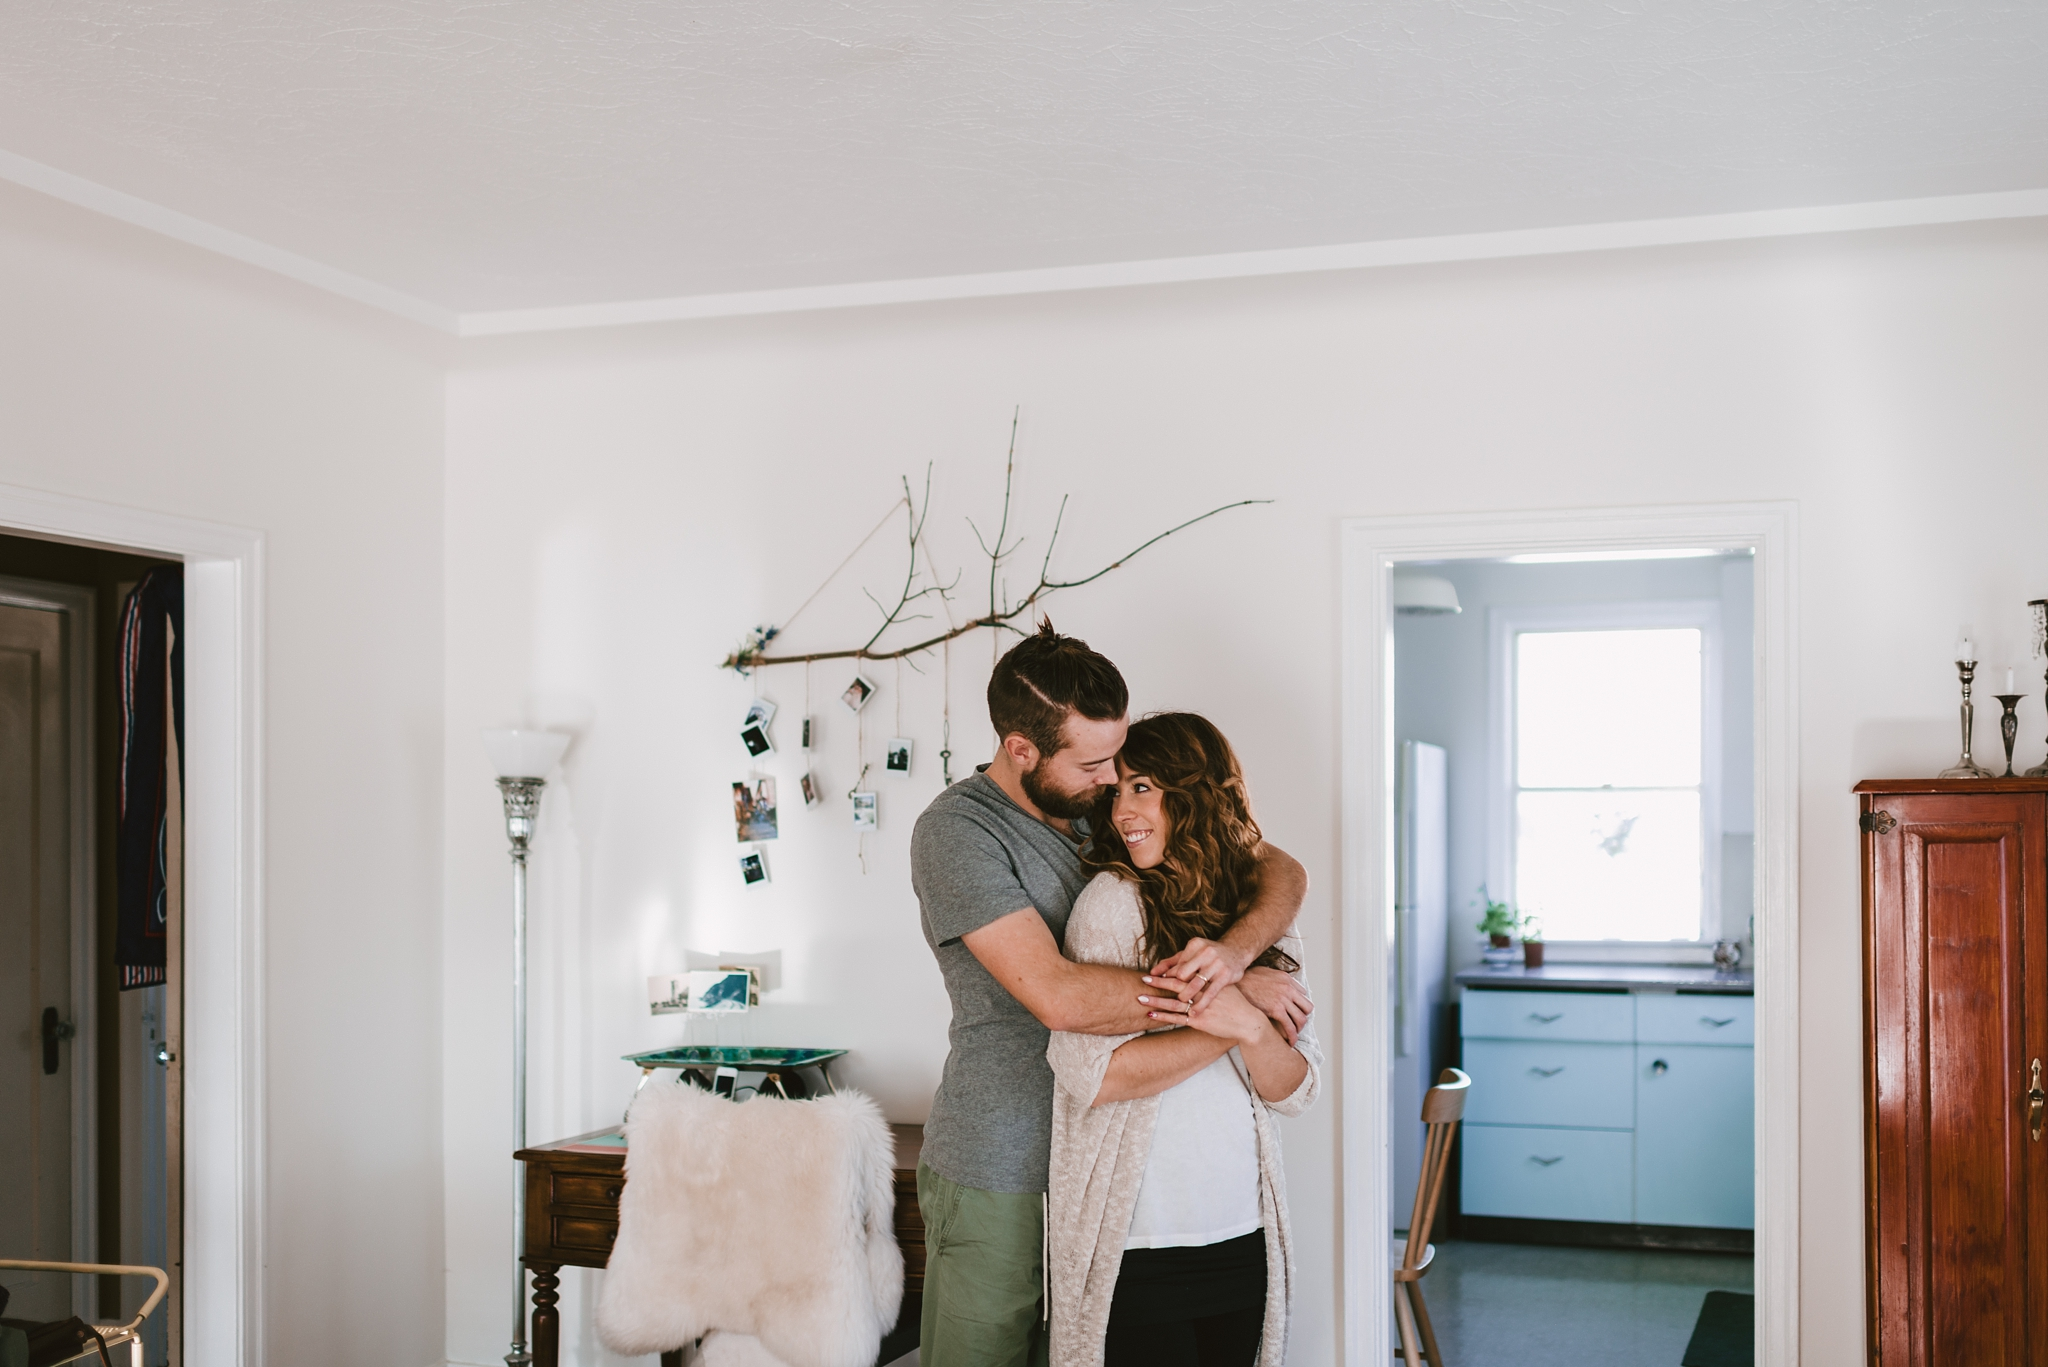 kaihla_tonai_intimate_wedding_elopement_photographer_0373